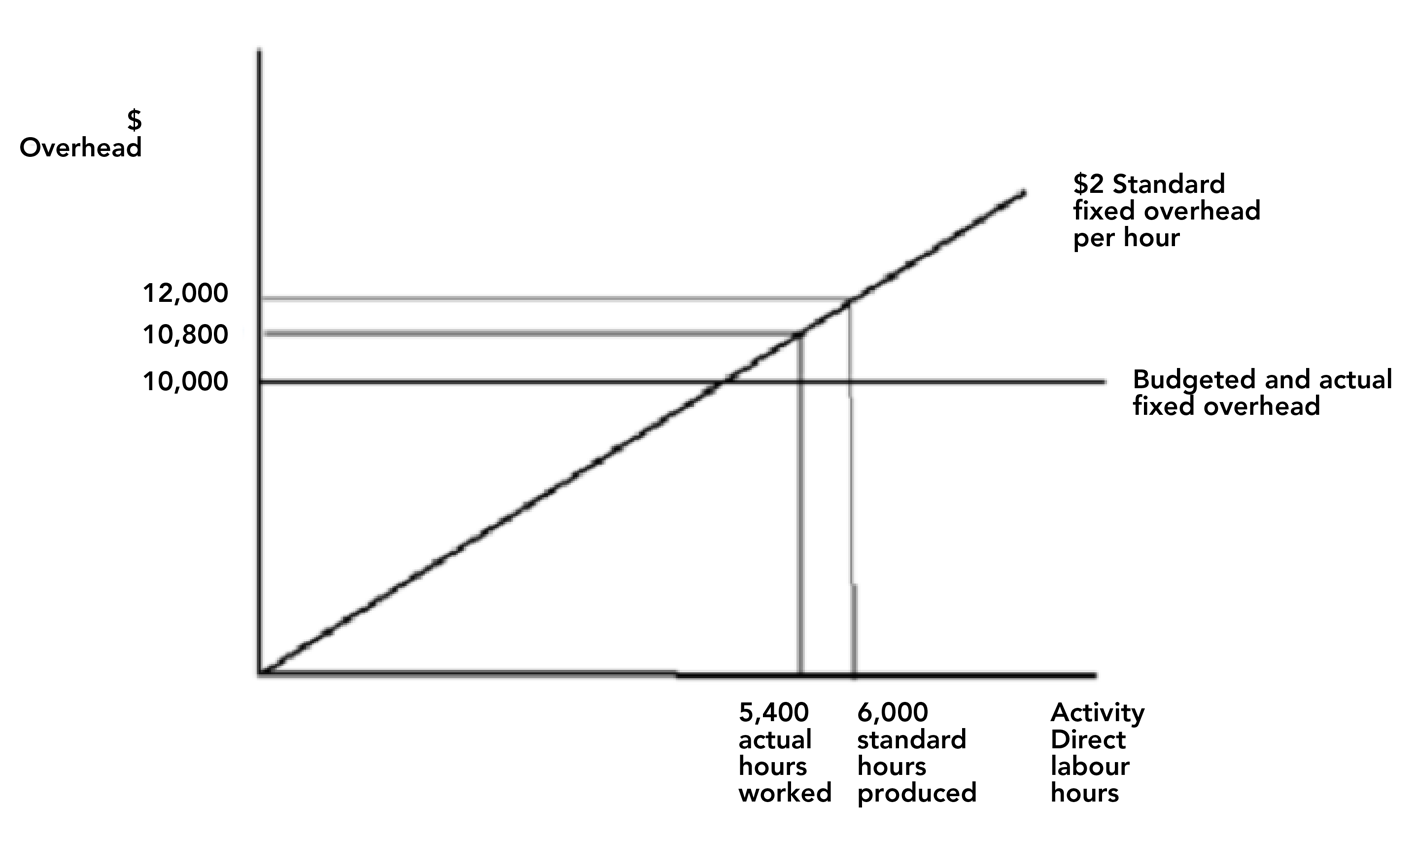 standard costing term paper Differences between activity-based costing and traditional cost strategy activity-based costing (abc) is a costing model that identifies overhead activities in an organization and assigns the cost of each activity resource to all products and services according to the actual consumption, while traditional costing equally distributes all overhead expenses.